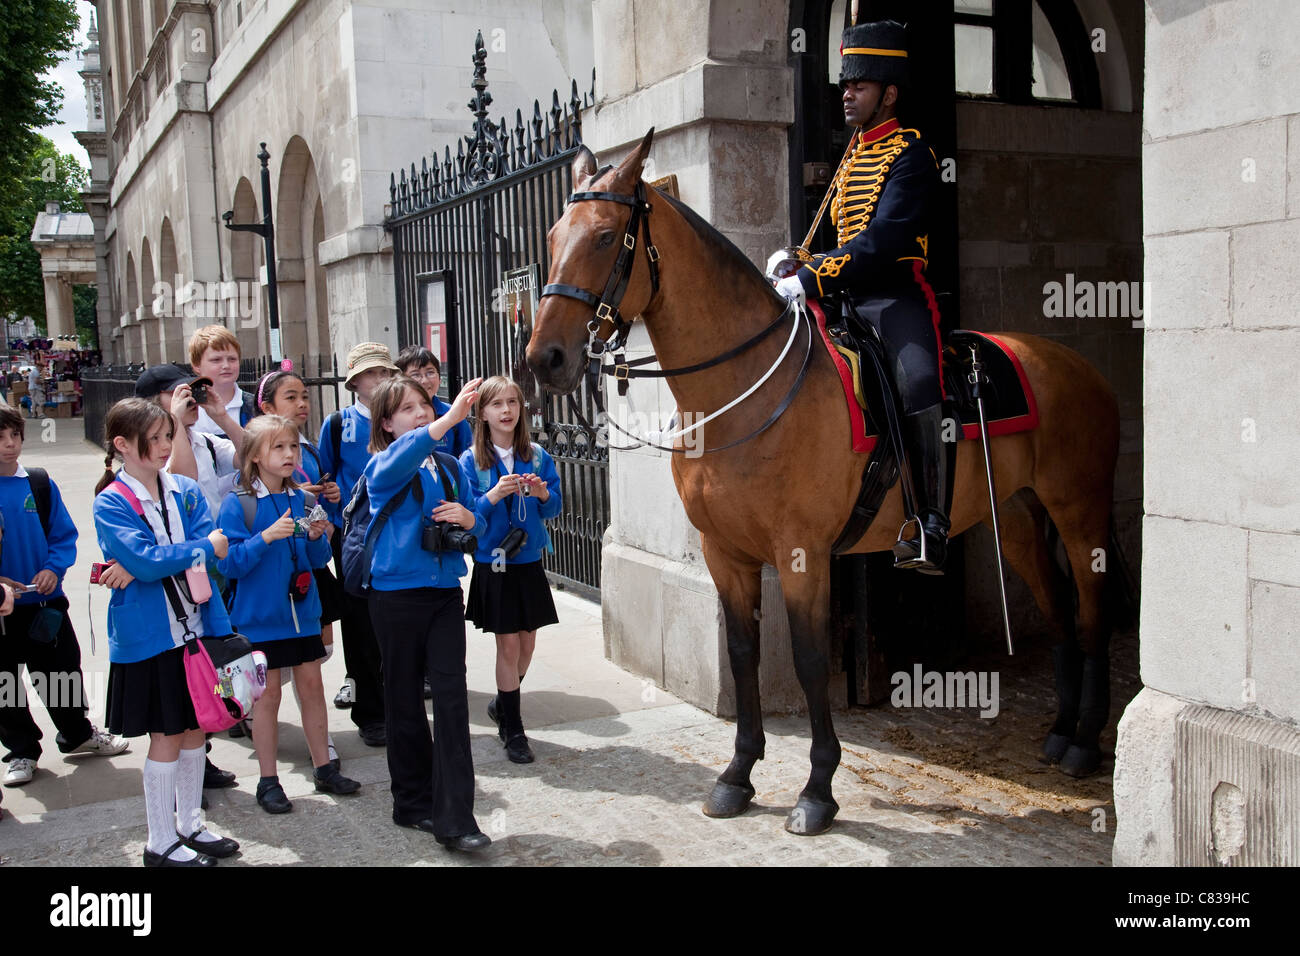 British Schoolchildren pose for photographs with a soldier from the Queen's Life Guard, London, England - Stock Image